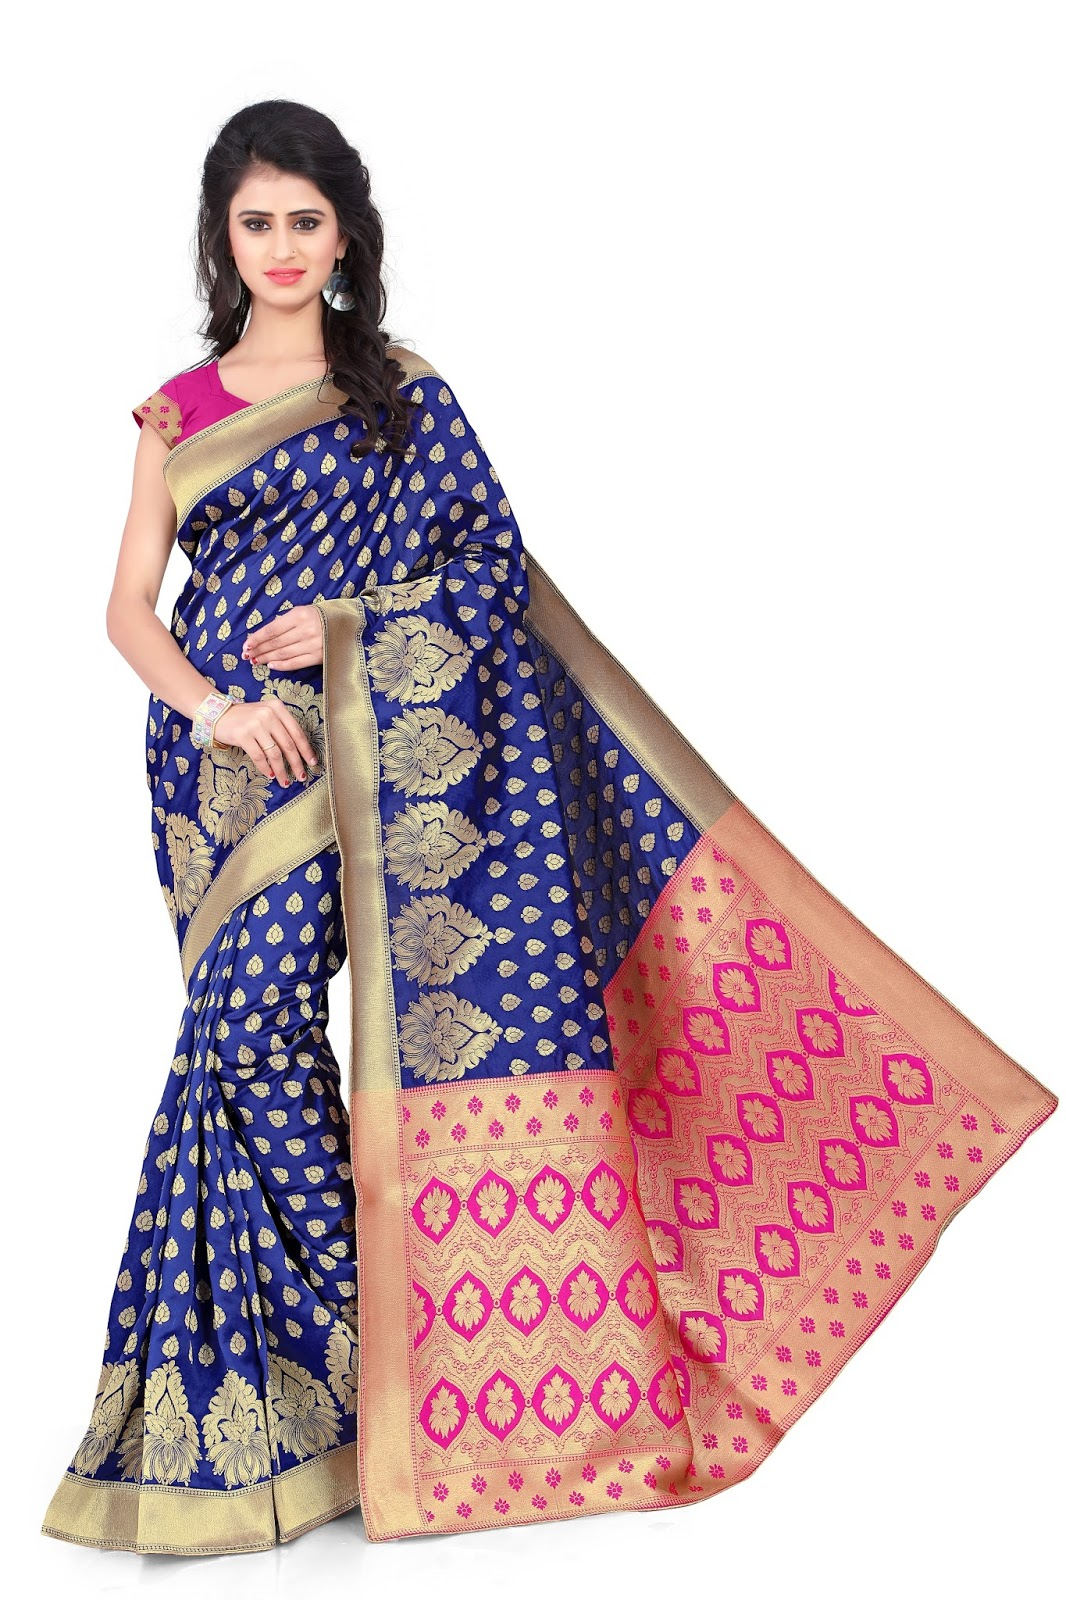 Sanjavani – Latest New Banarasi Saree Buy Online